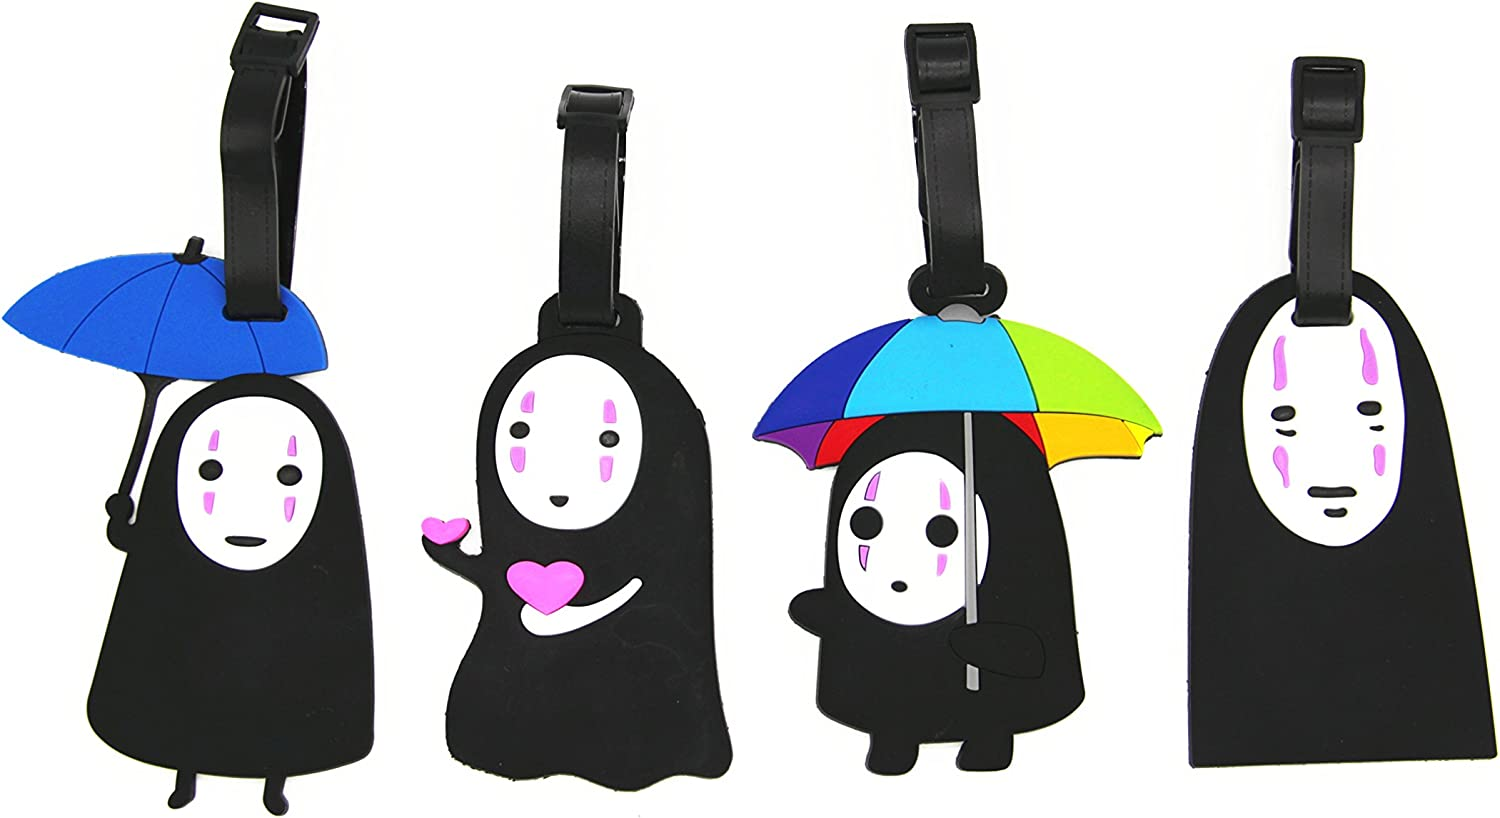 NOT Tokyo Ghoul Kaneki Luggage Tags Luggage Tag With Privacy Cover Unisex 1 PCS